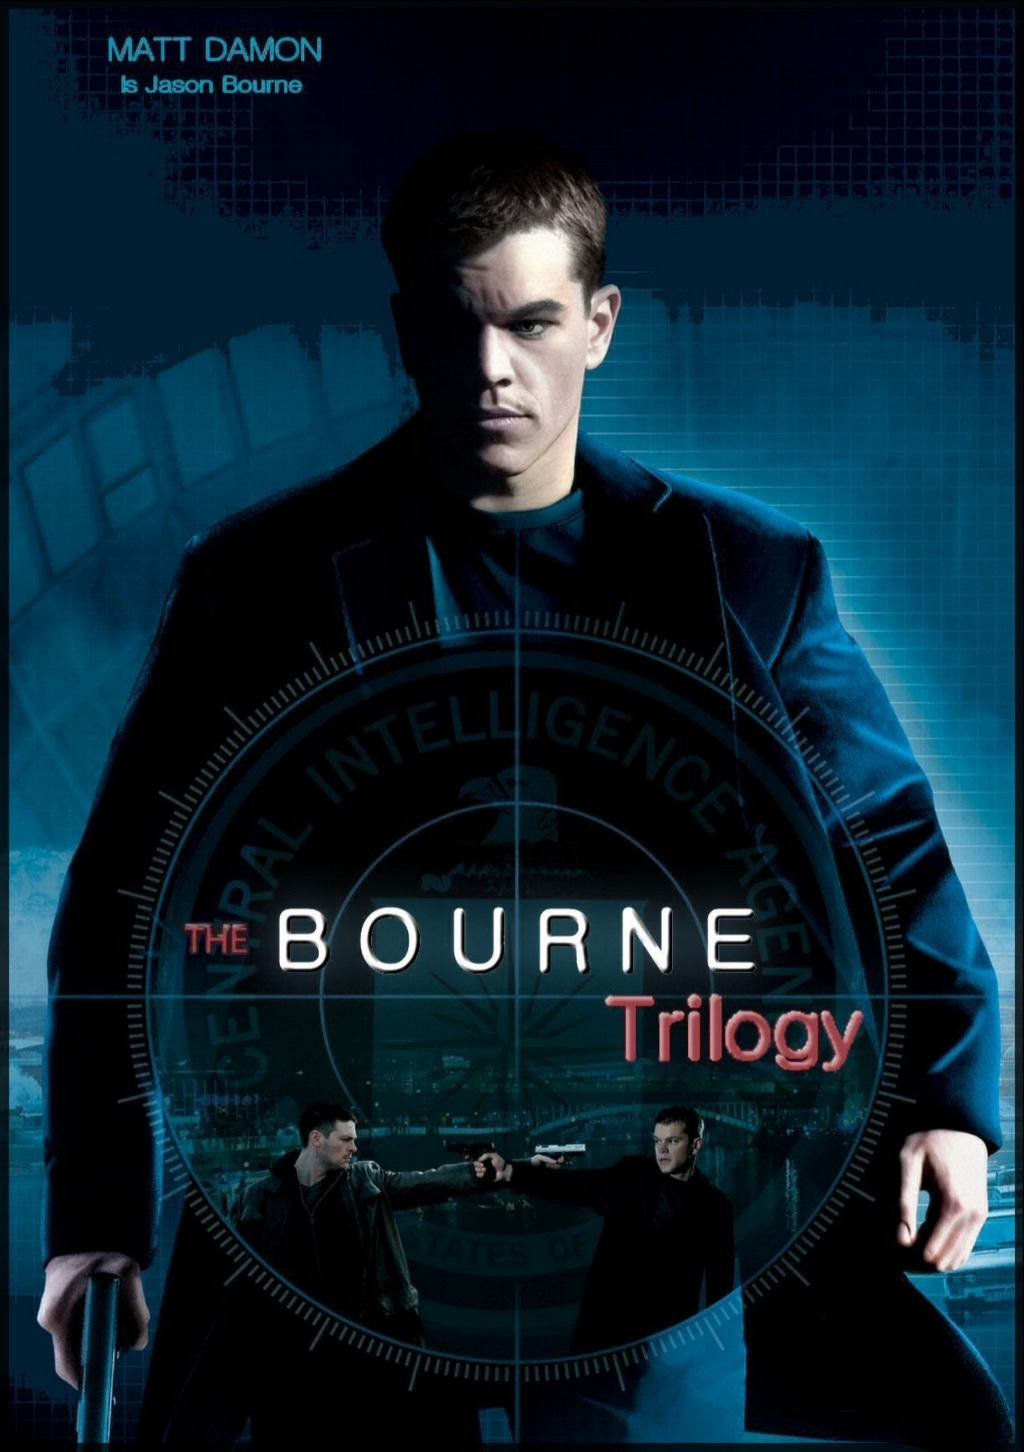 Moby - Extreme Ways / The Bourne Trilogy OST